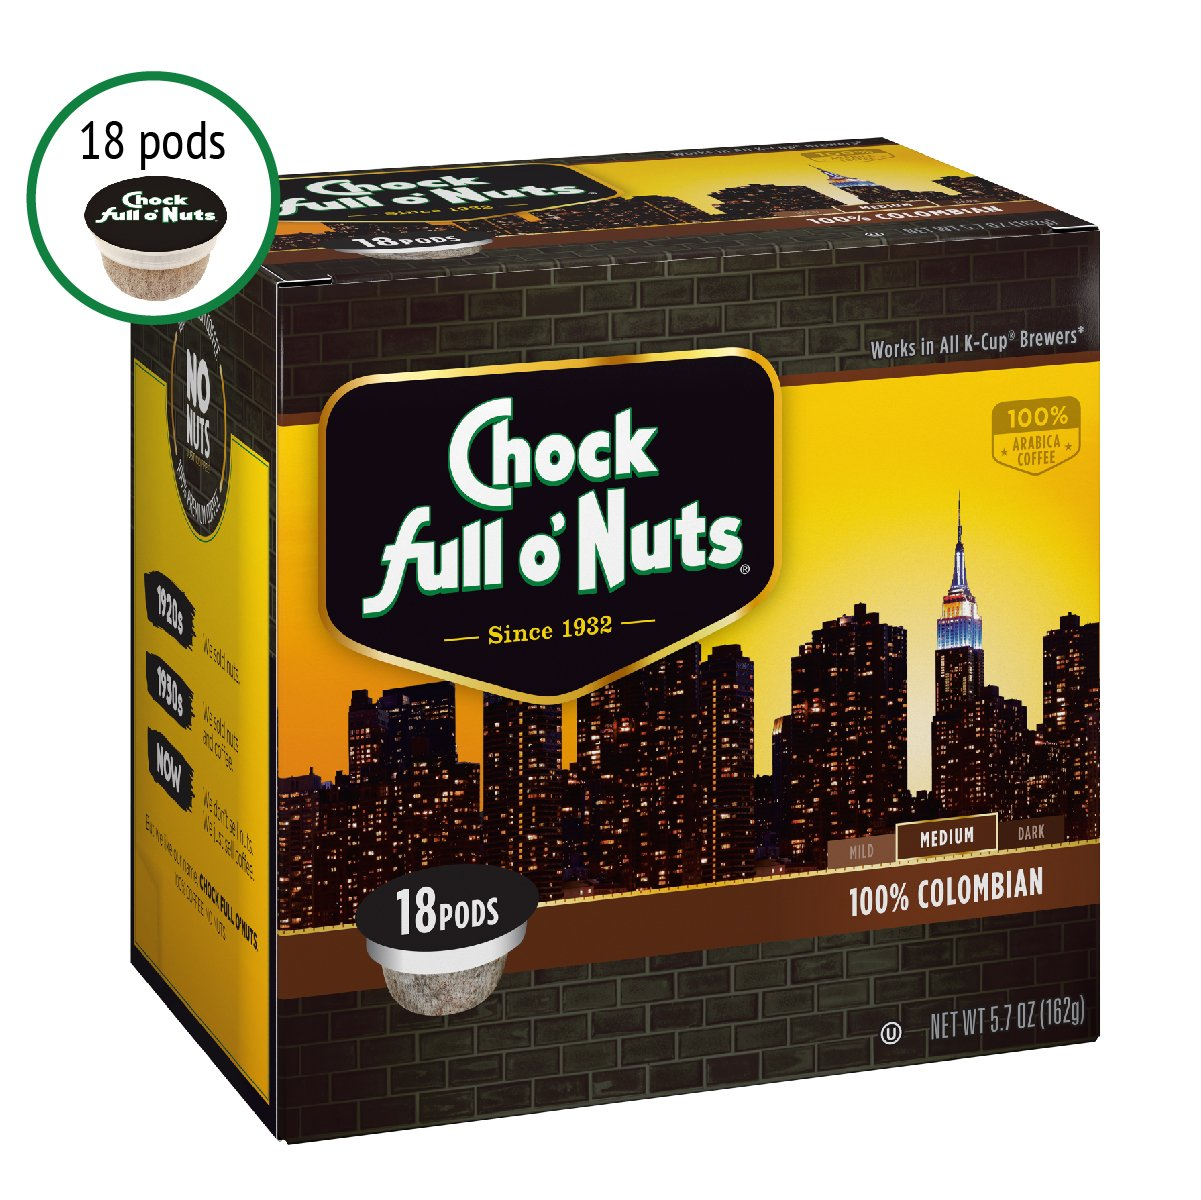 Chock Full o'Nuts Single-Serve Coffee Pods, 100% Colombian Medium Roast - Premium Arabica Coffee - Compatible with Keurig K-Cup Brewers (18 Count)